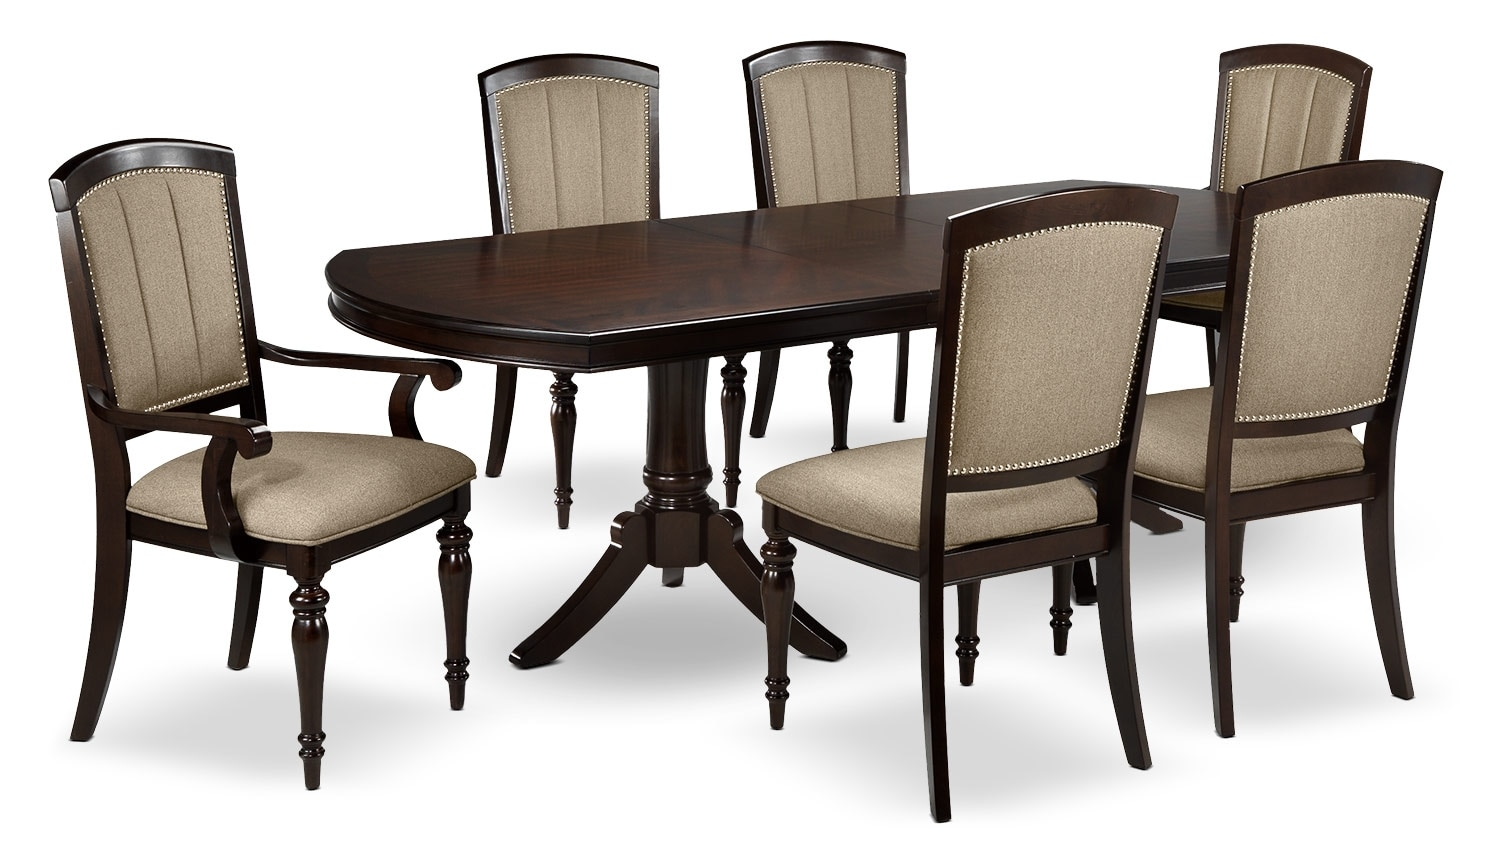 Dining Room Furniture - Thoreaux 7 Pc. Dining Room Package